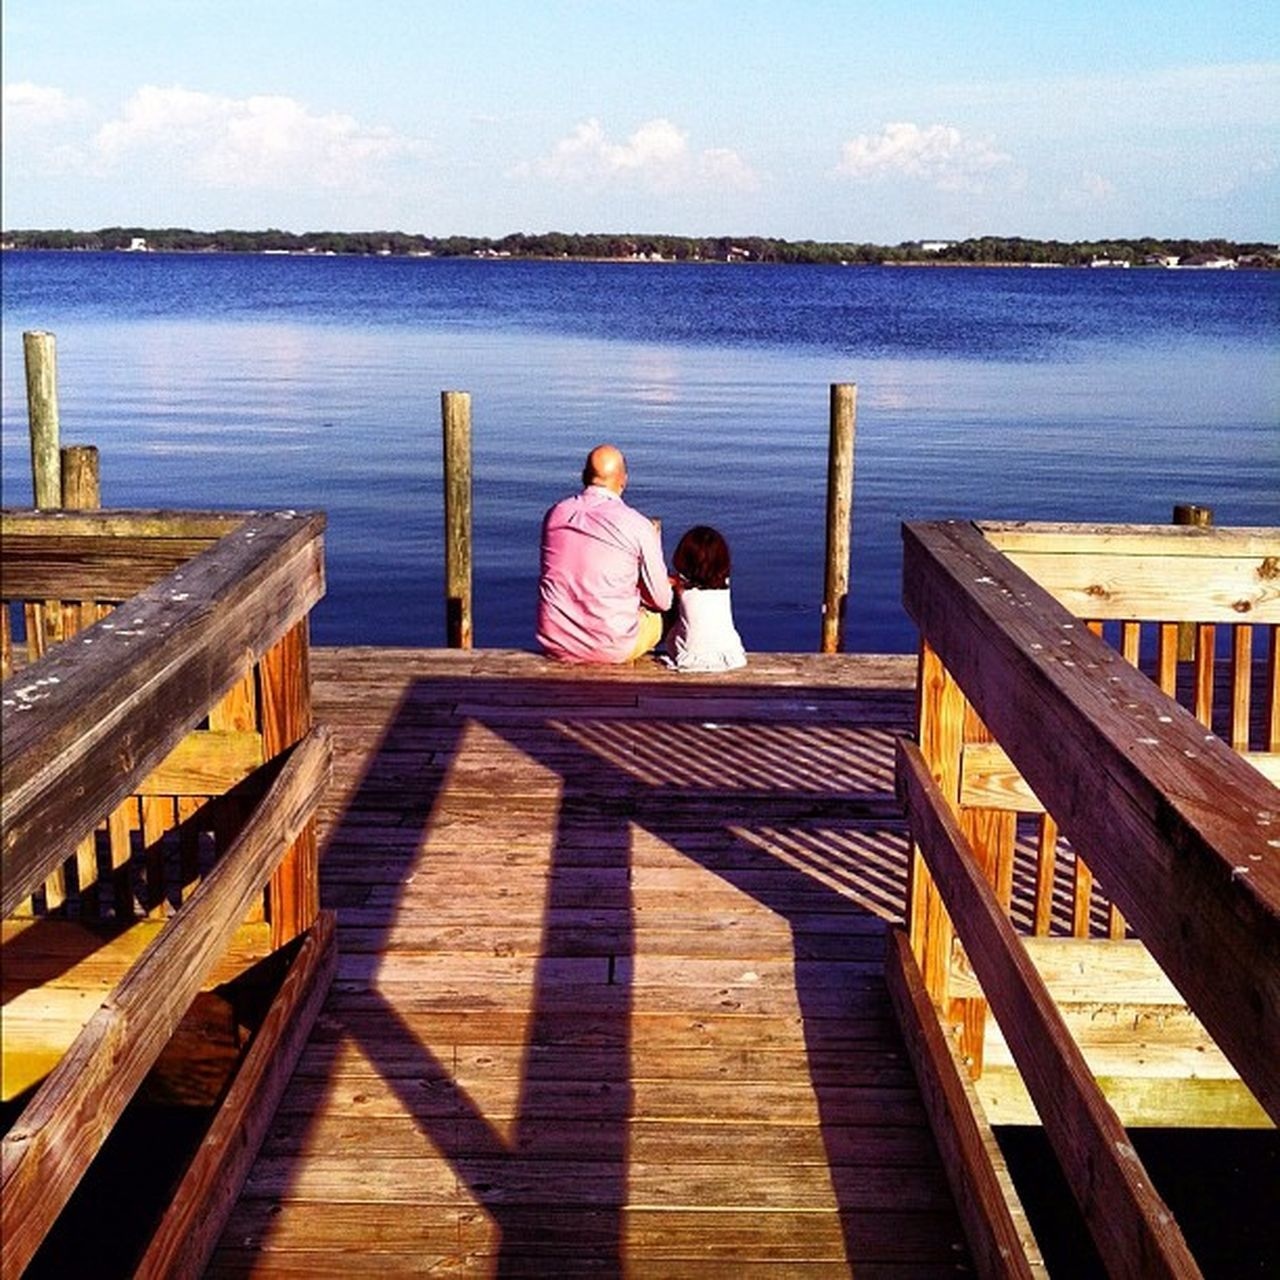 two people, water, pier, togetherness, leisure activity, wood - material, real people, jetty, day, men, nature, love, rear view, sea, sitting, scenics, wood paneling, outdoors, beauty in nature, sky, lifestyles, full length, bonding, women, fishing pole, people